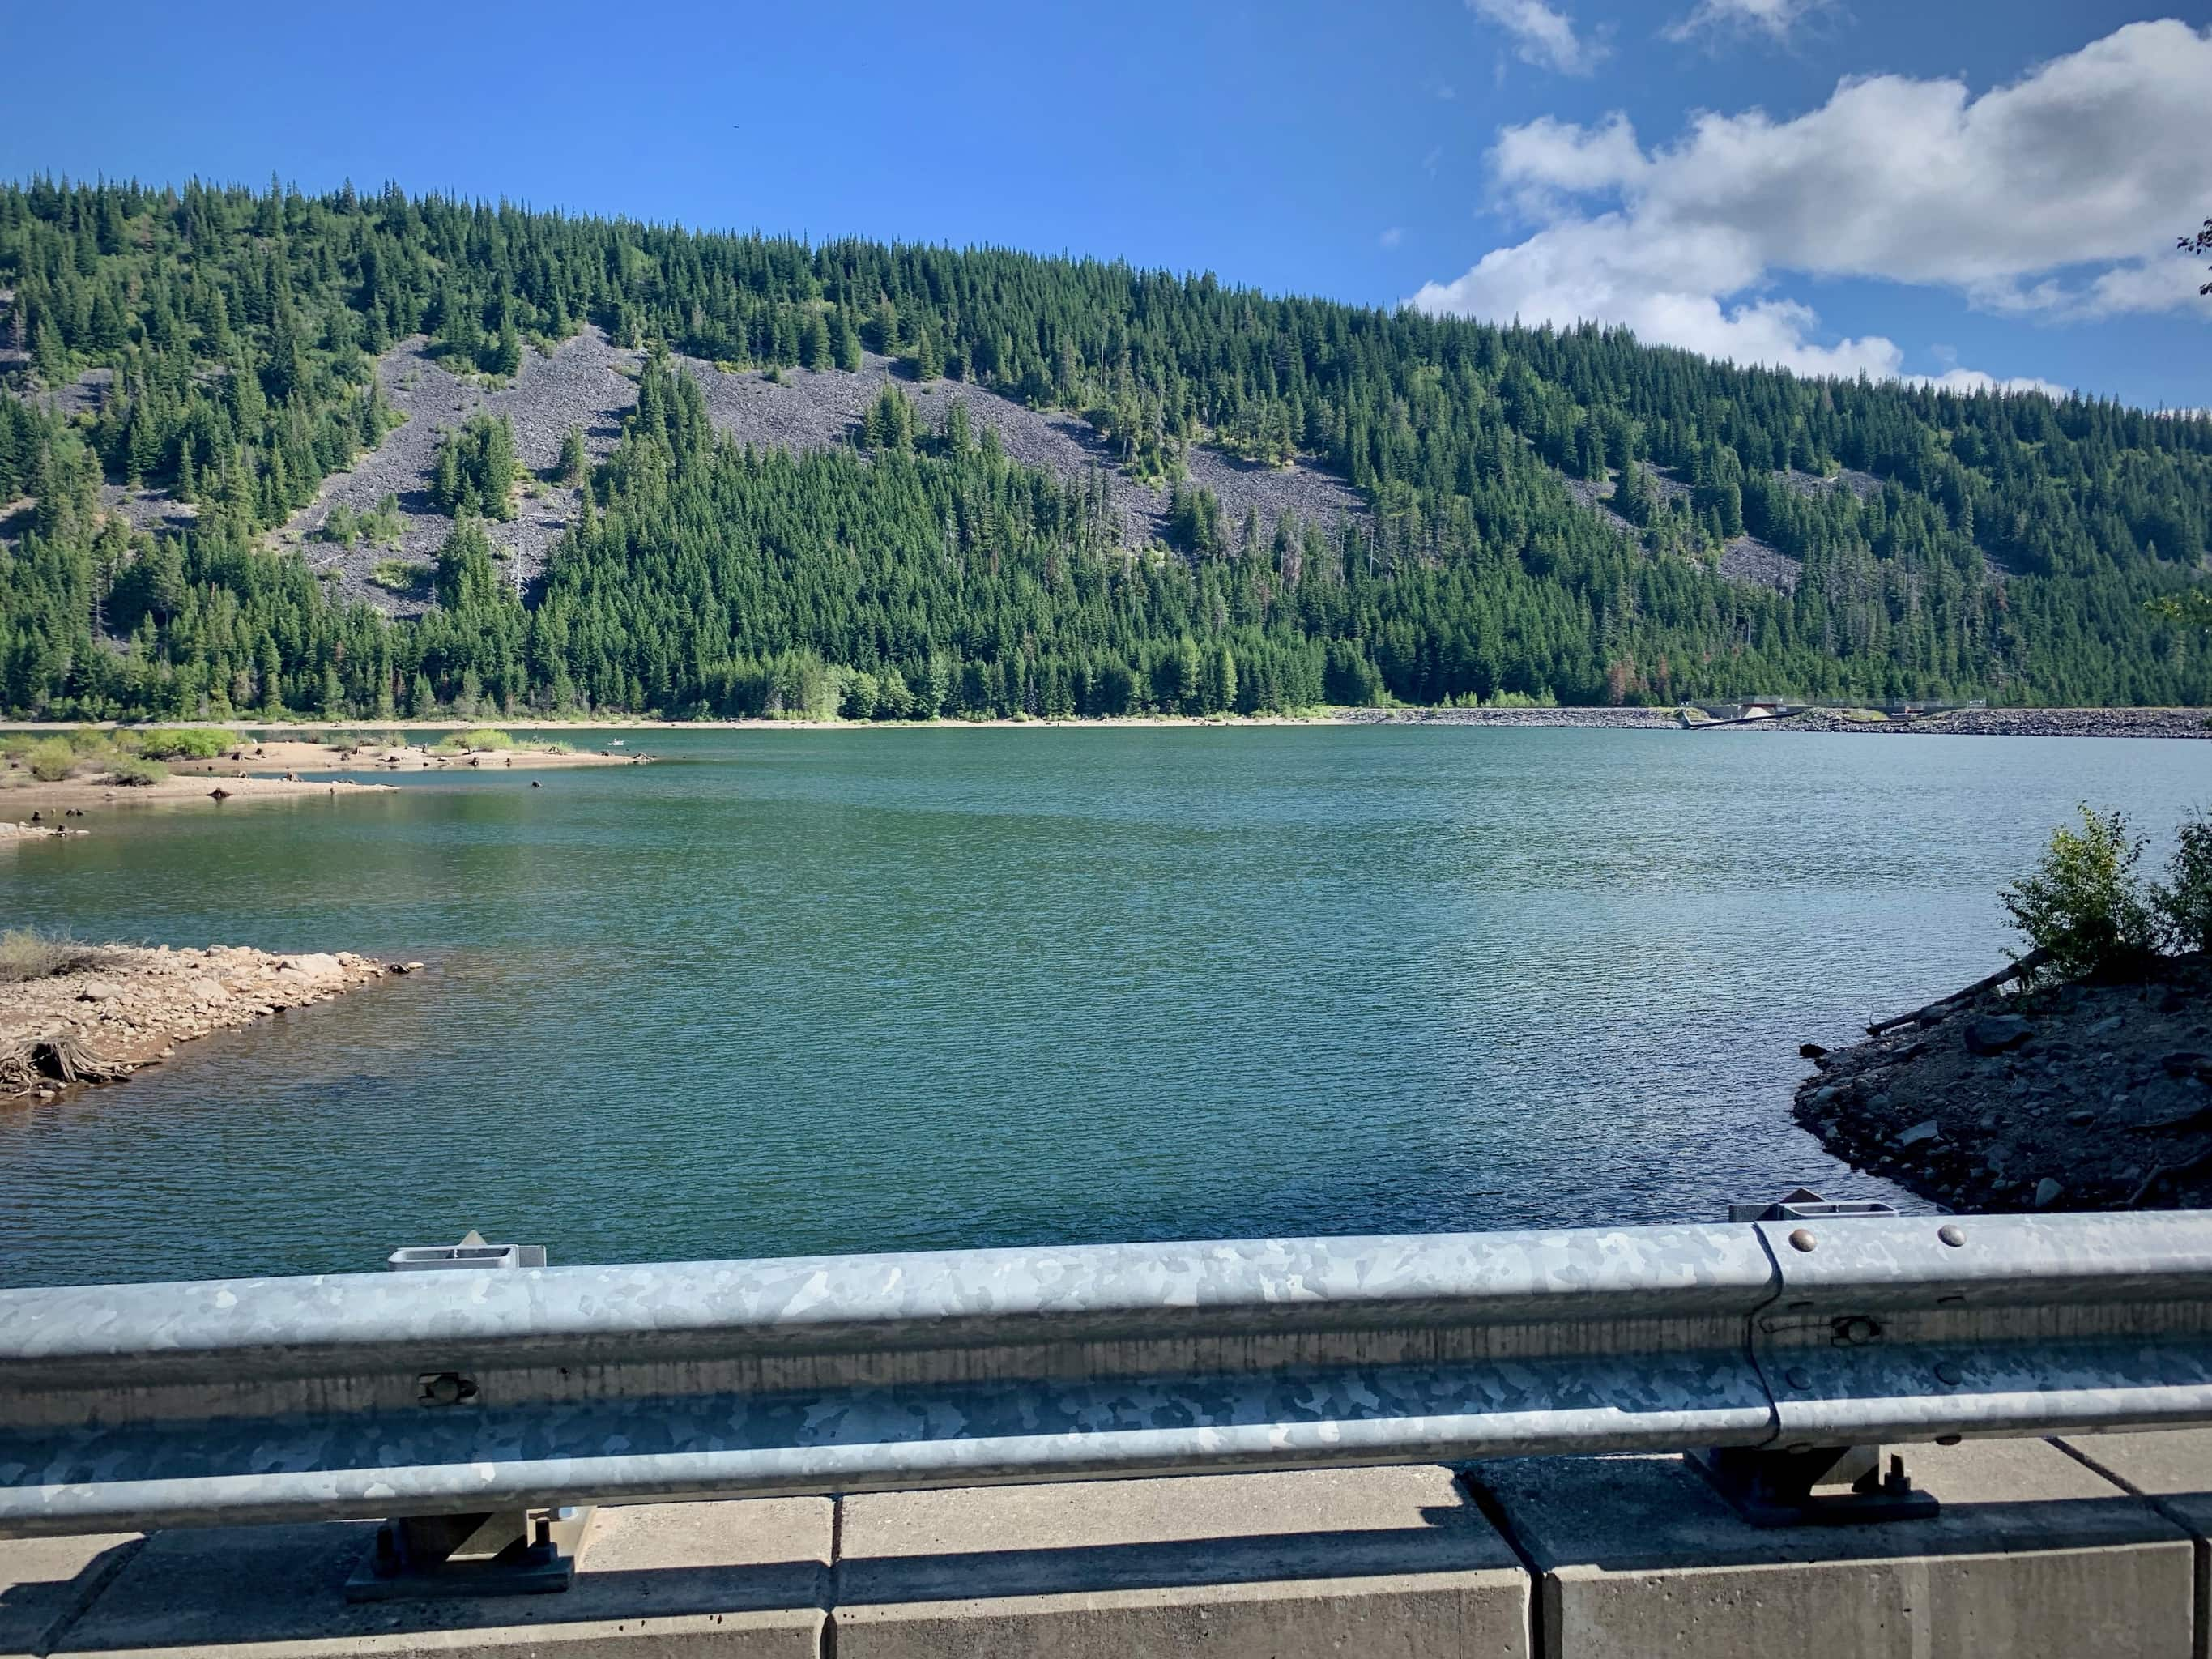 Laurance Lake from the road. Mt. Hood National forest.